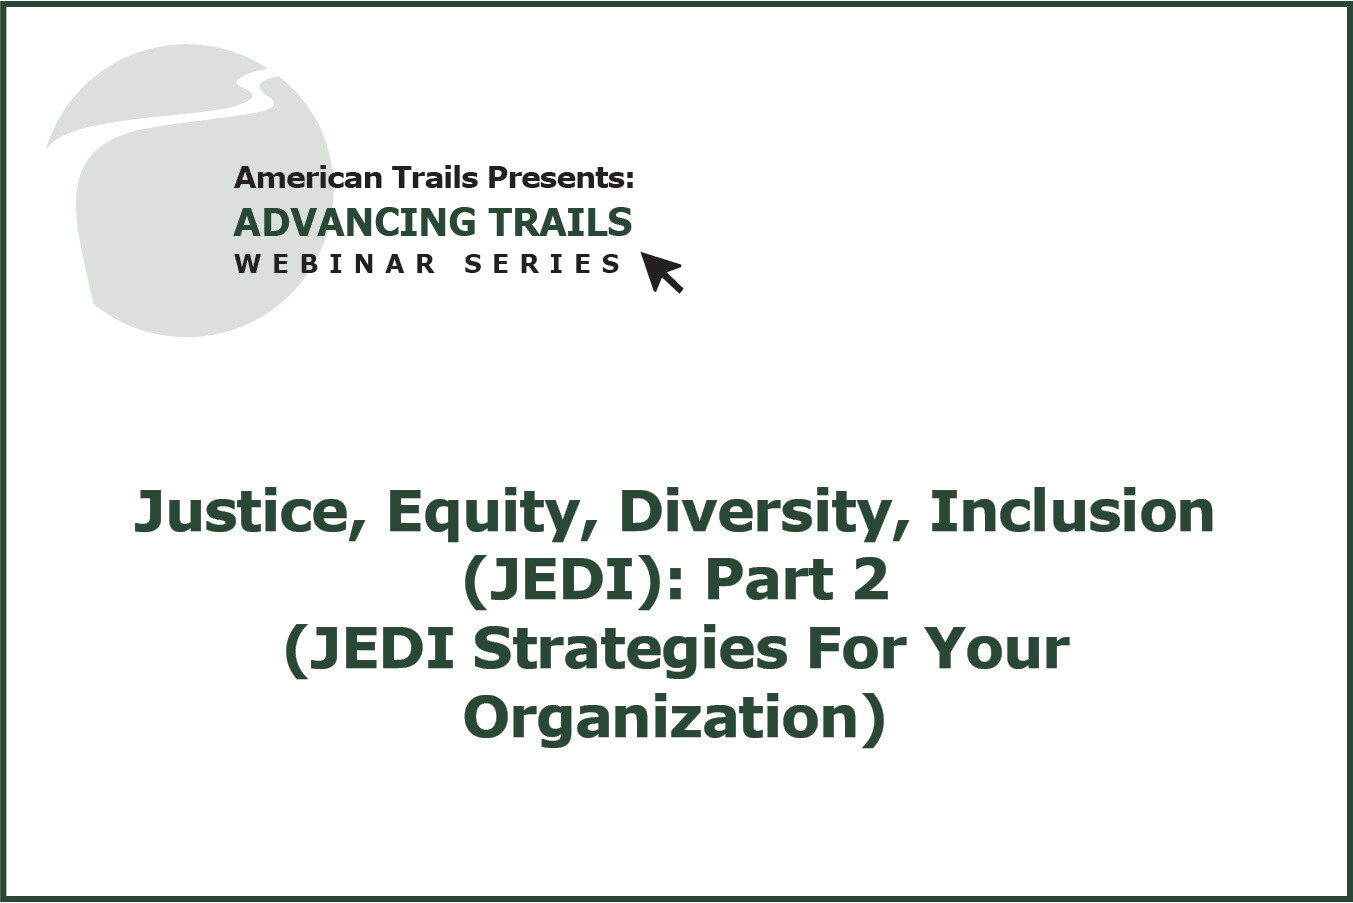 Justice, Equity, Diversity, Inclusion (JEDI): Part 2 (JEDI Strategies For Your Organization) (RECORDING)